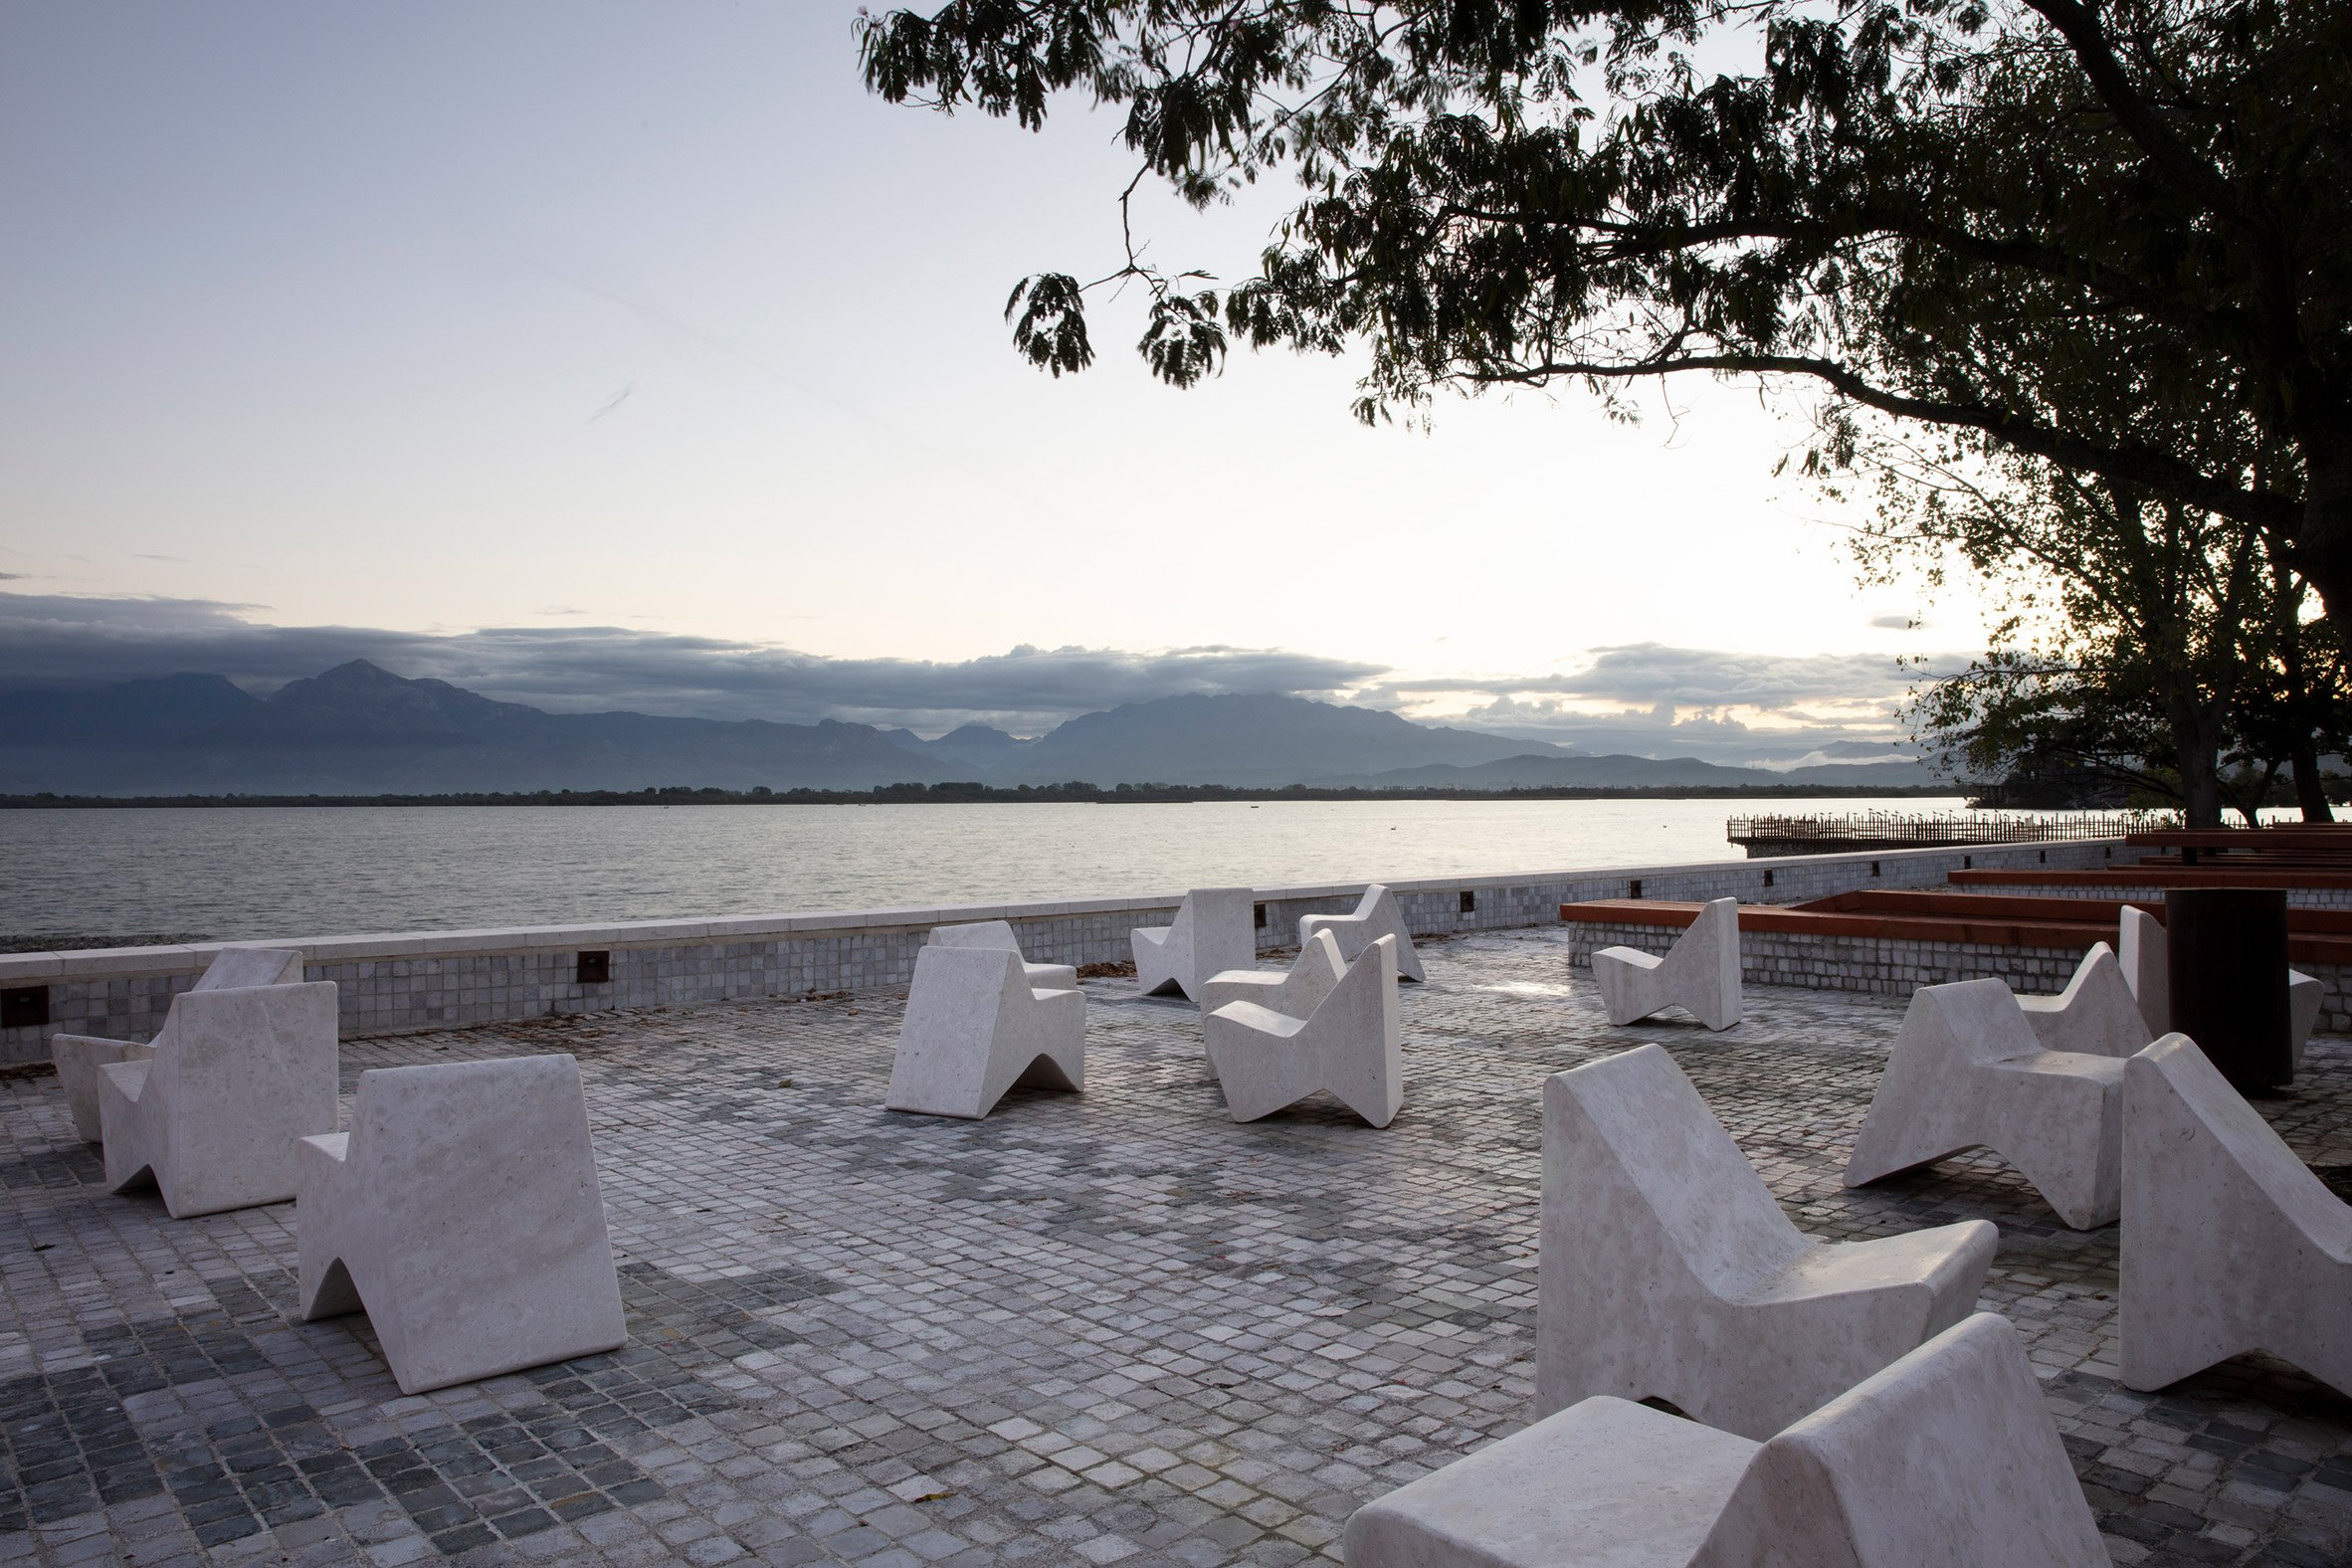 A waterfront with angular street furniture